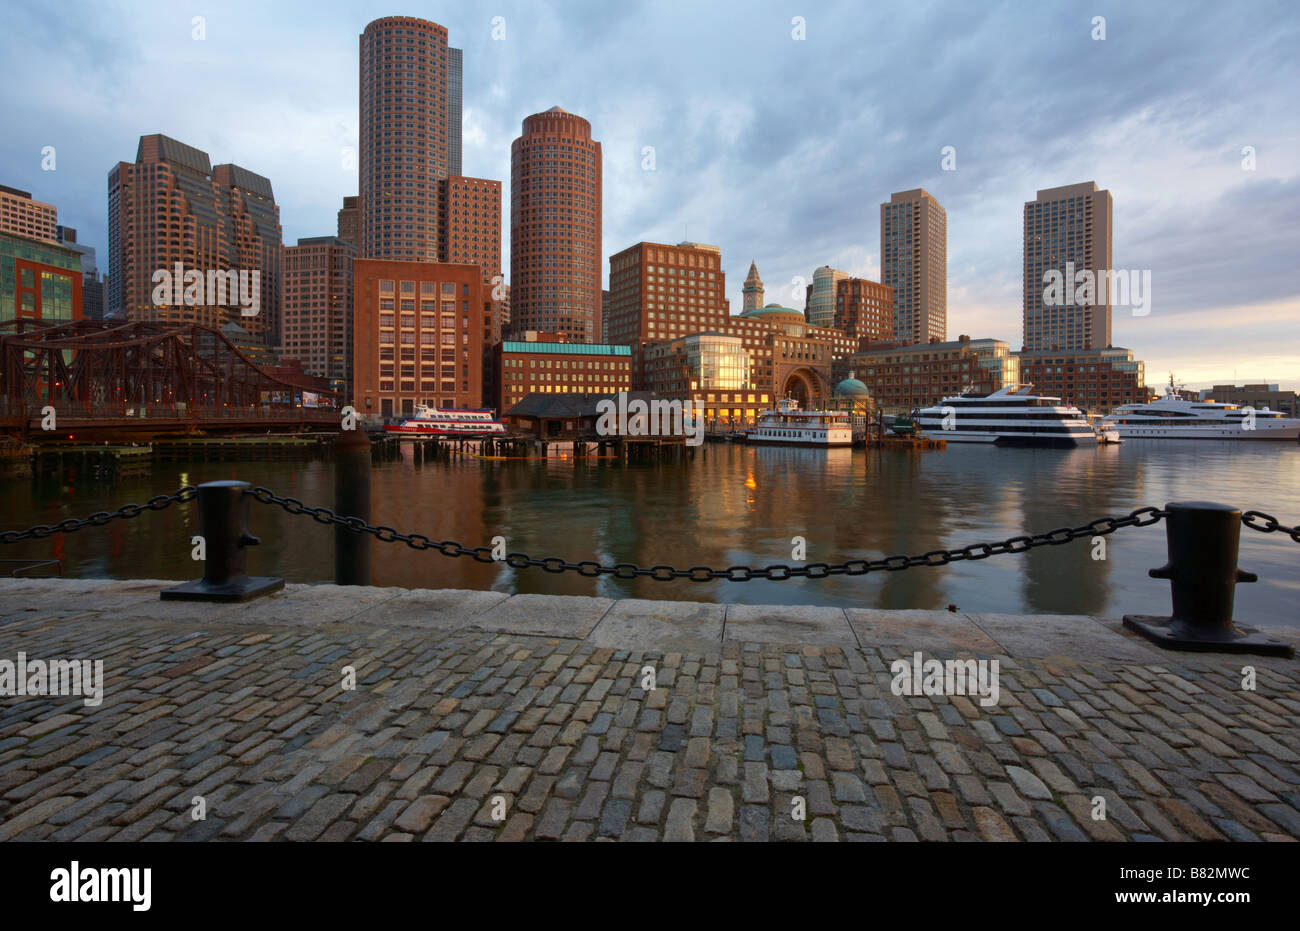 A view of the City of Boston - Stock Image